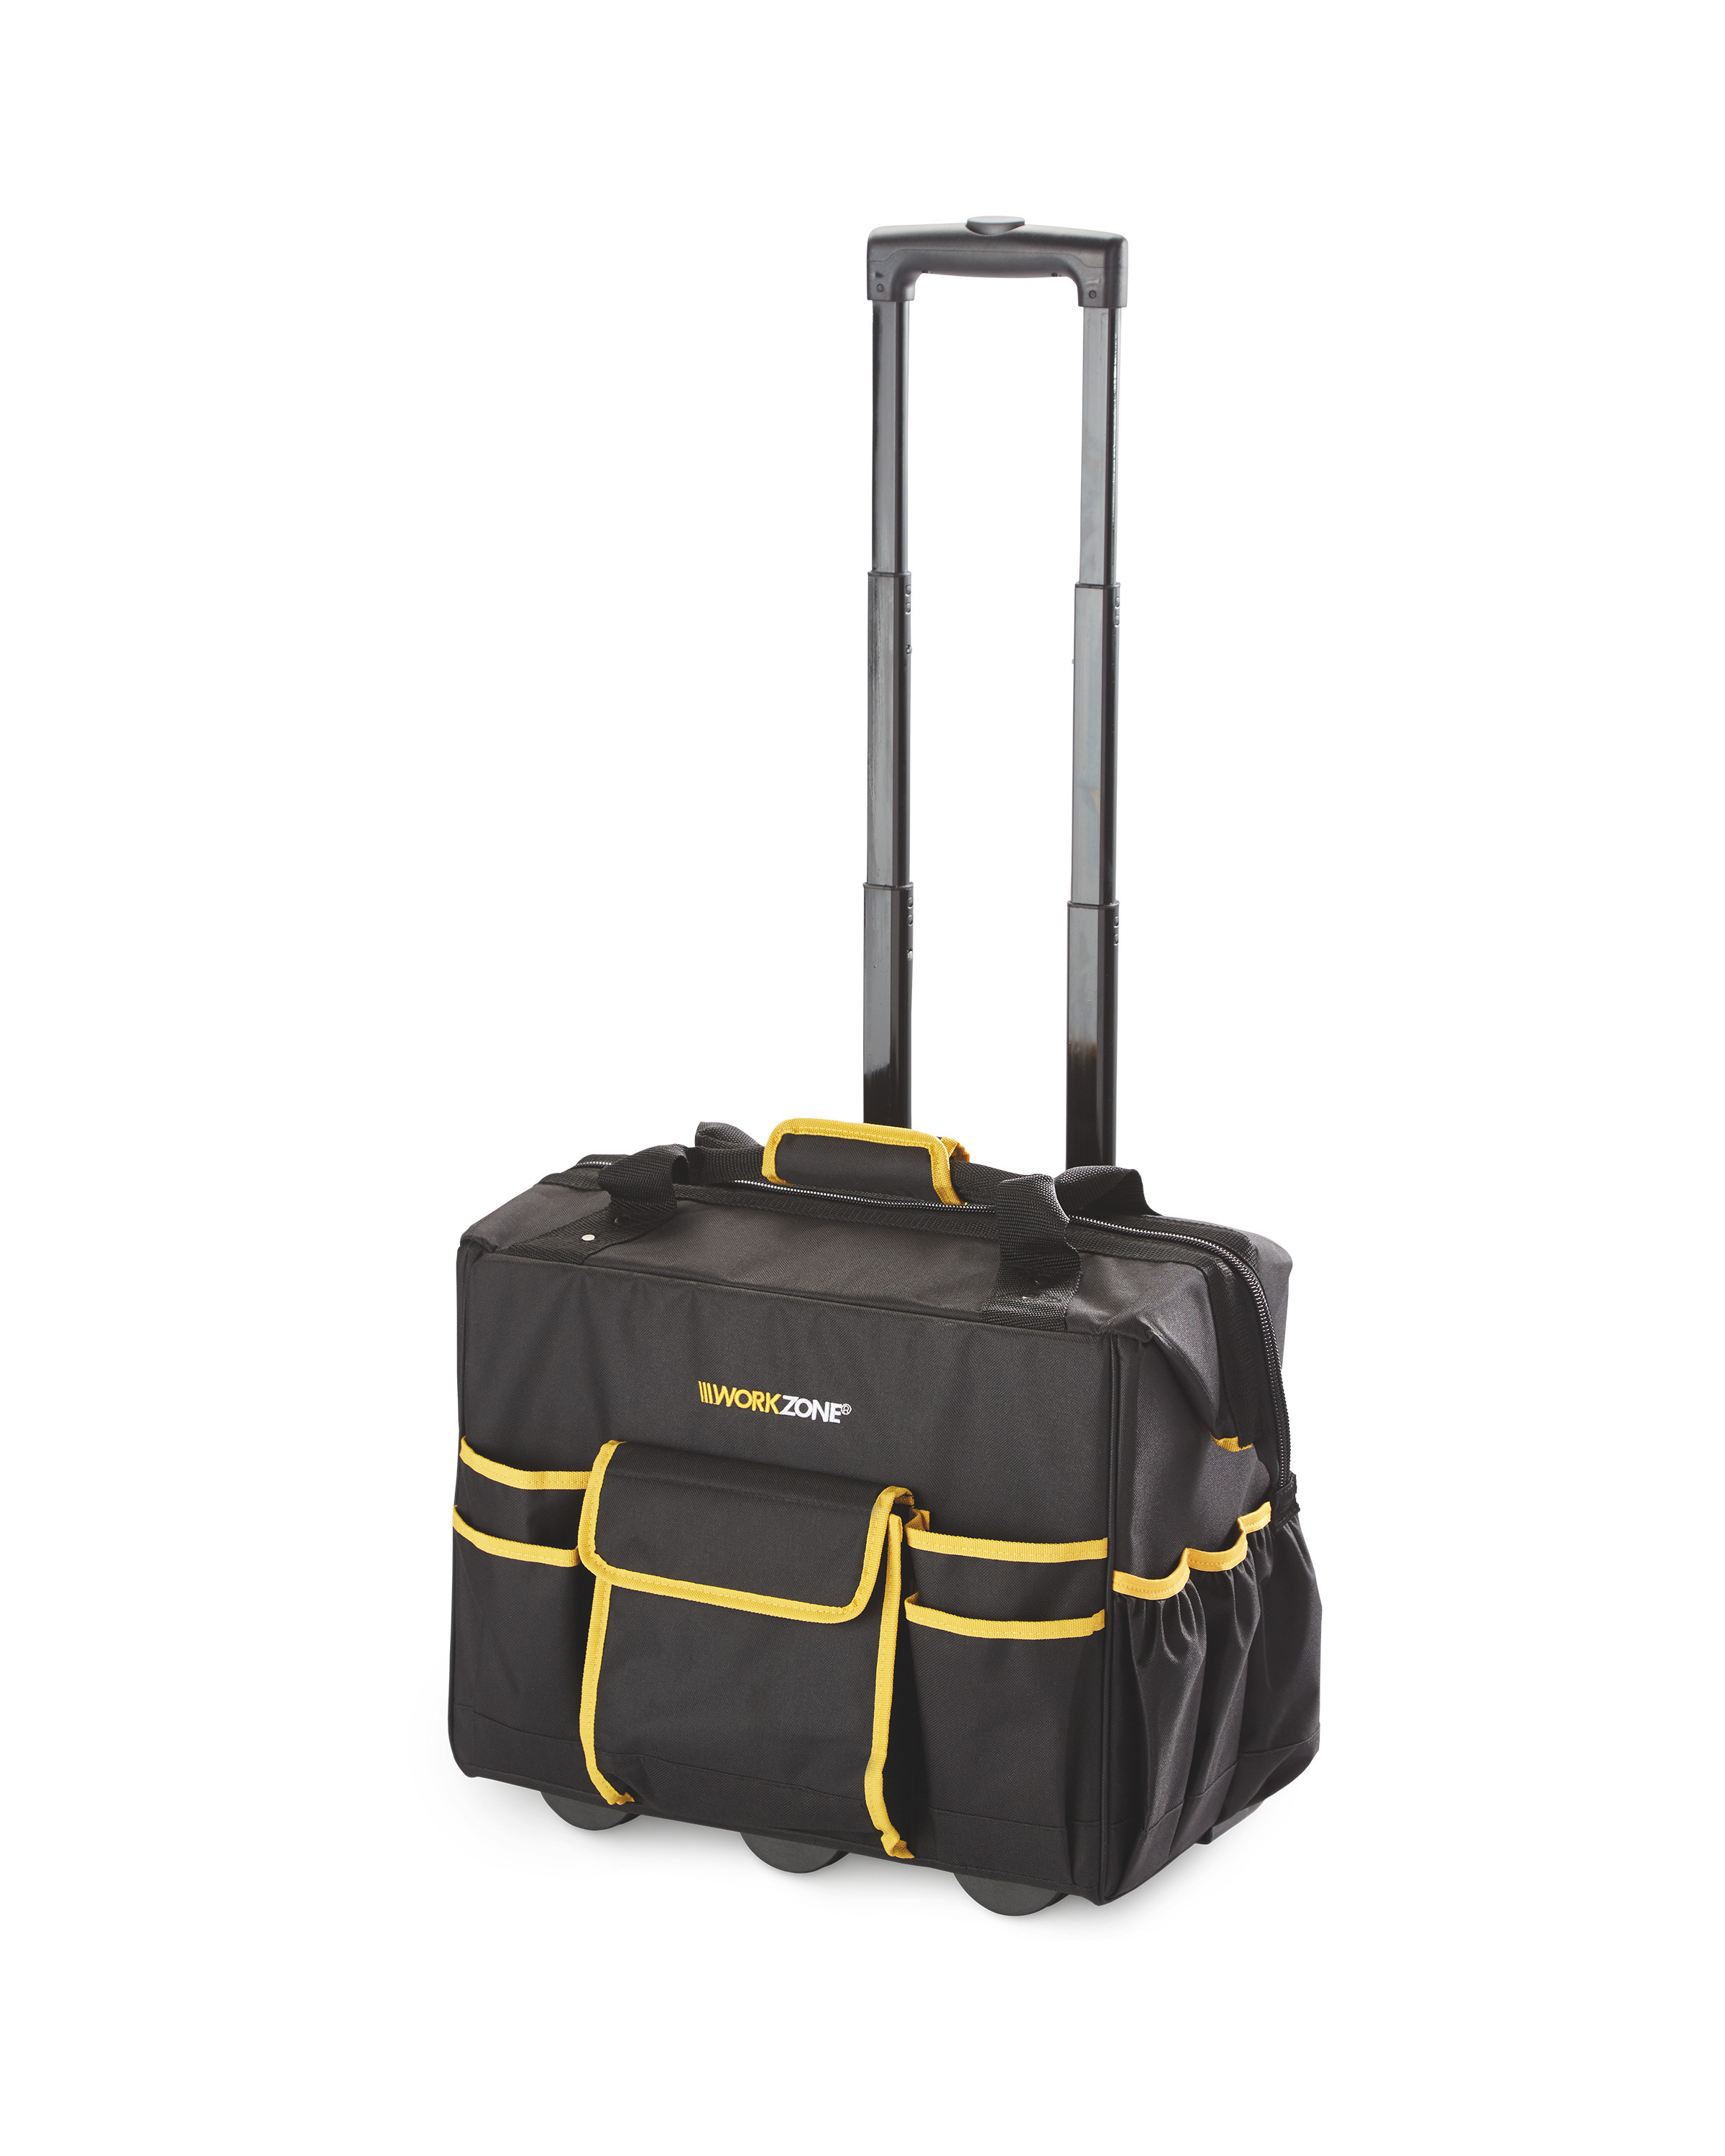 bf52cac7e56c Tool Bag With Wheels - ALDI UK